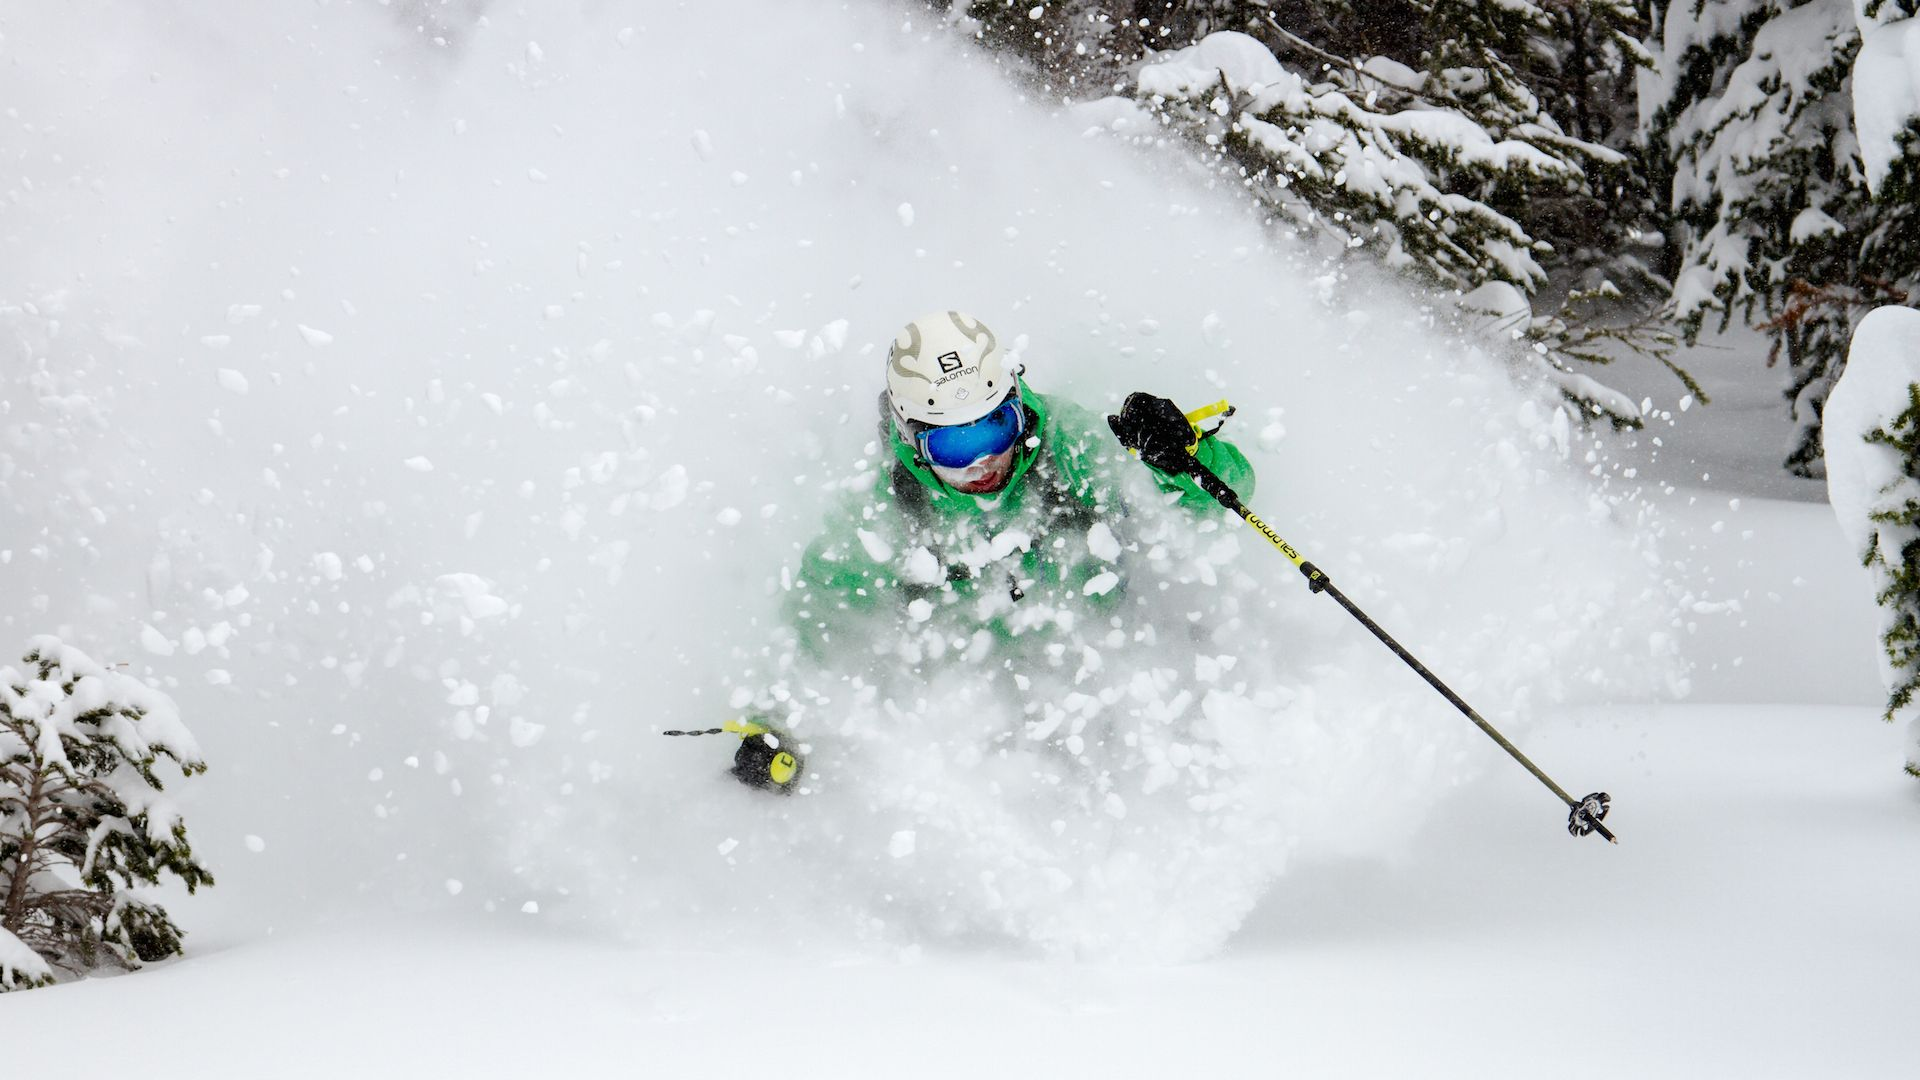 Deep powder. Legendary Terrain.